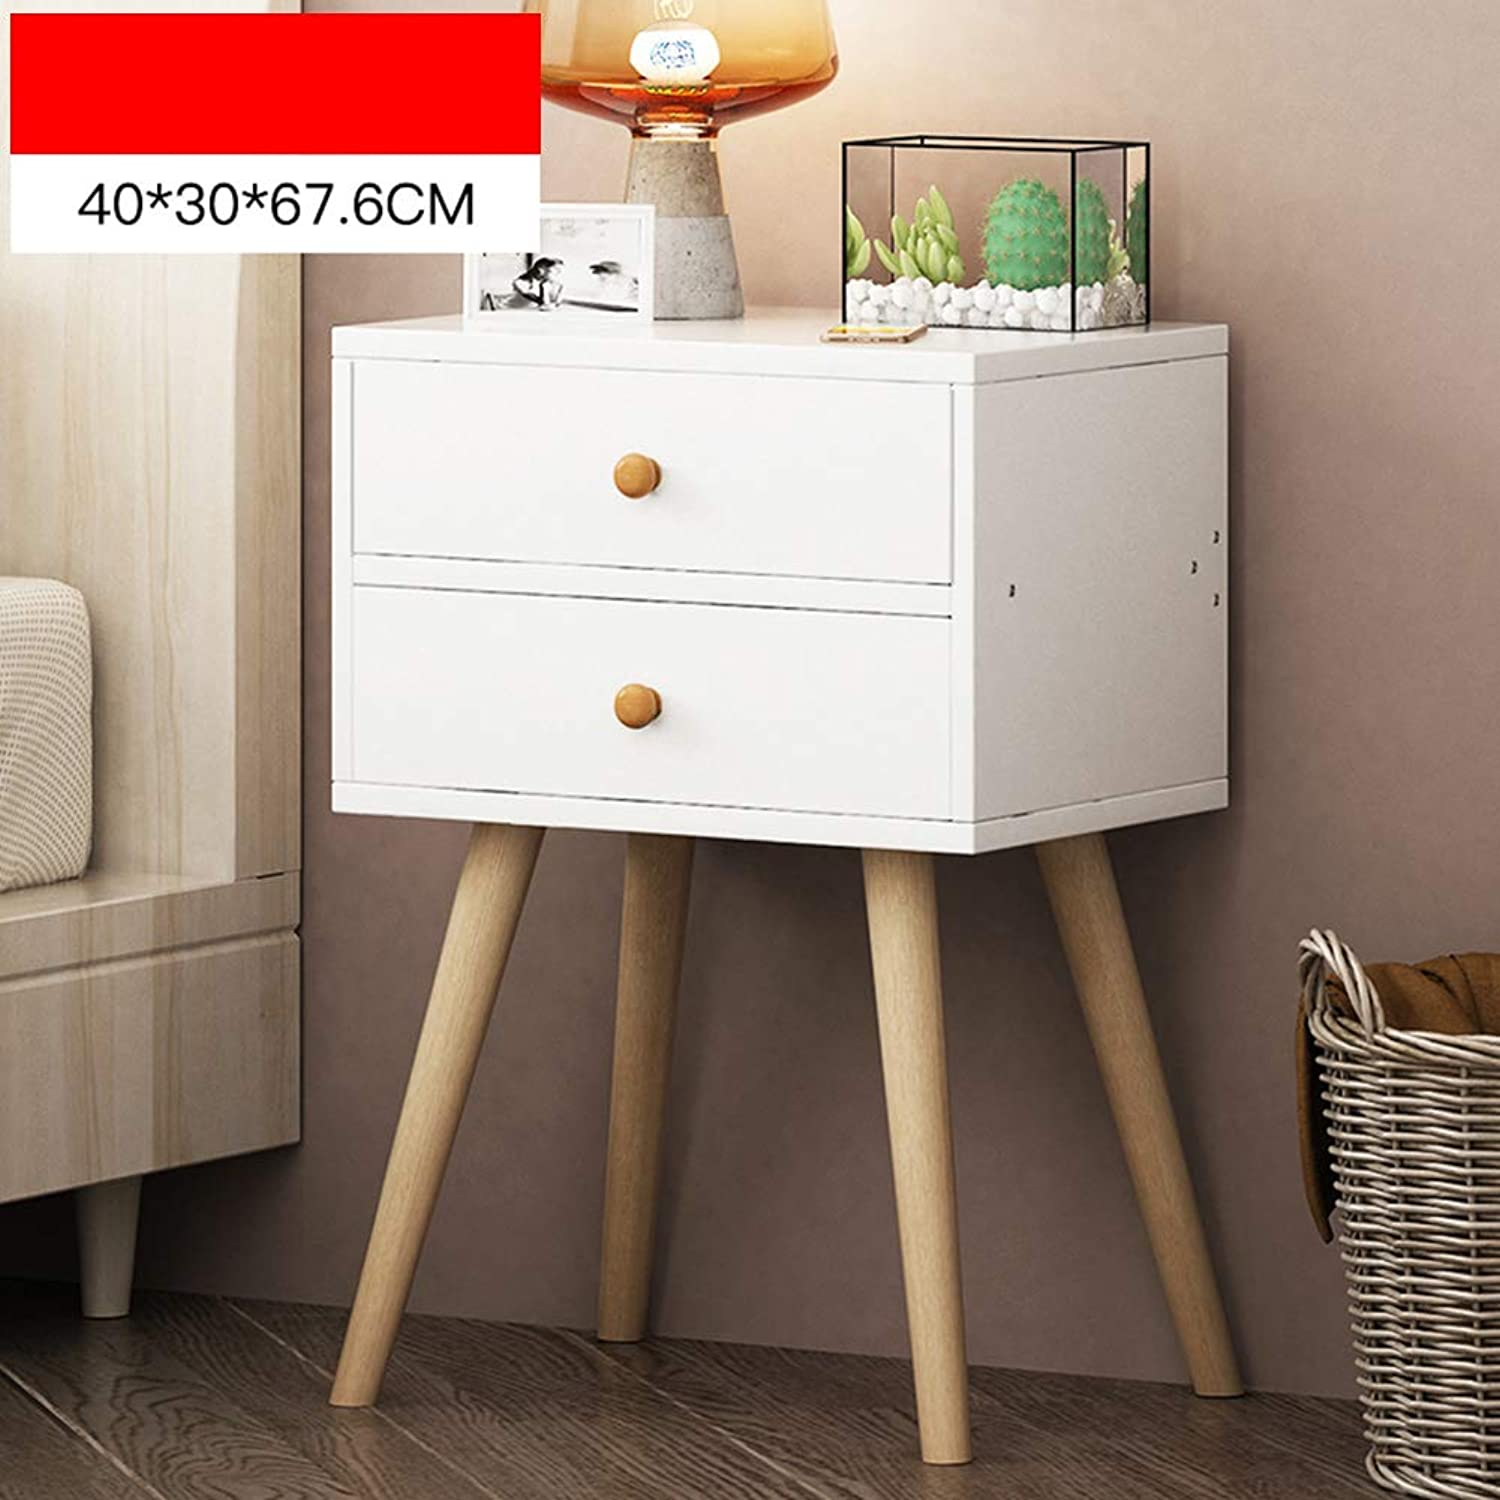 Coffee Table Chest of Drawers, with 2 Drawers Closed Storage Solid Wood Cabinet Feet Simple Bedside Table, Household Bedroom Bedside (color   B)